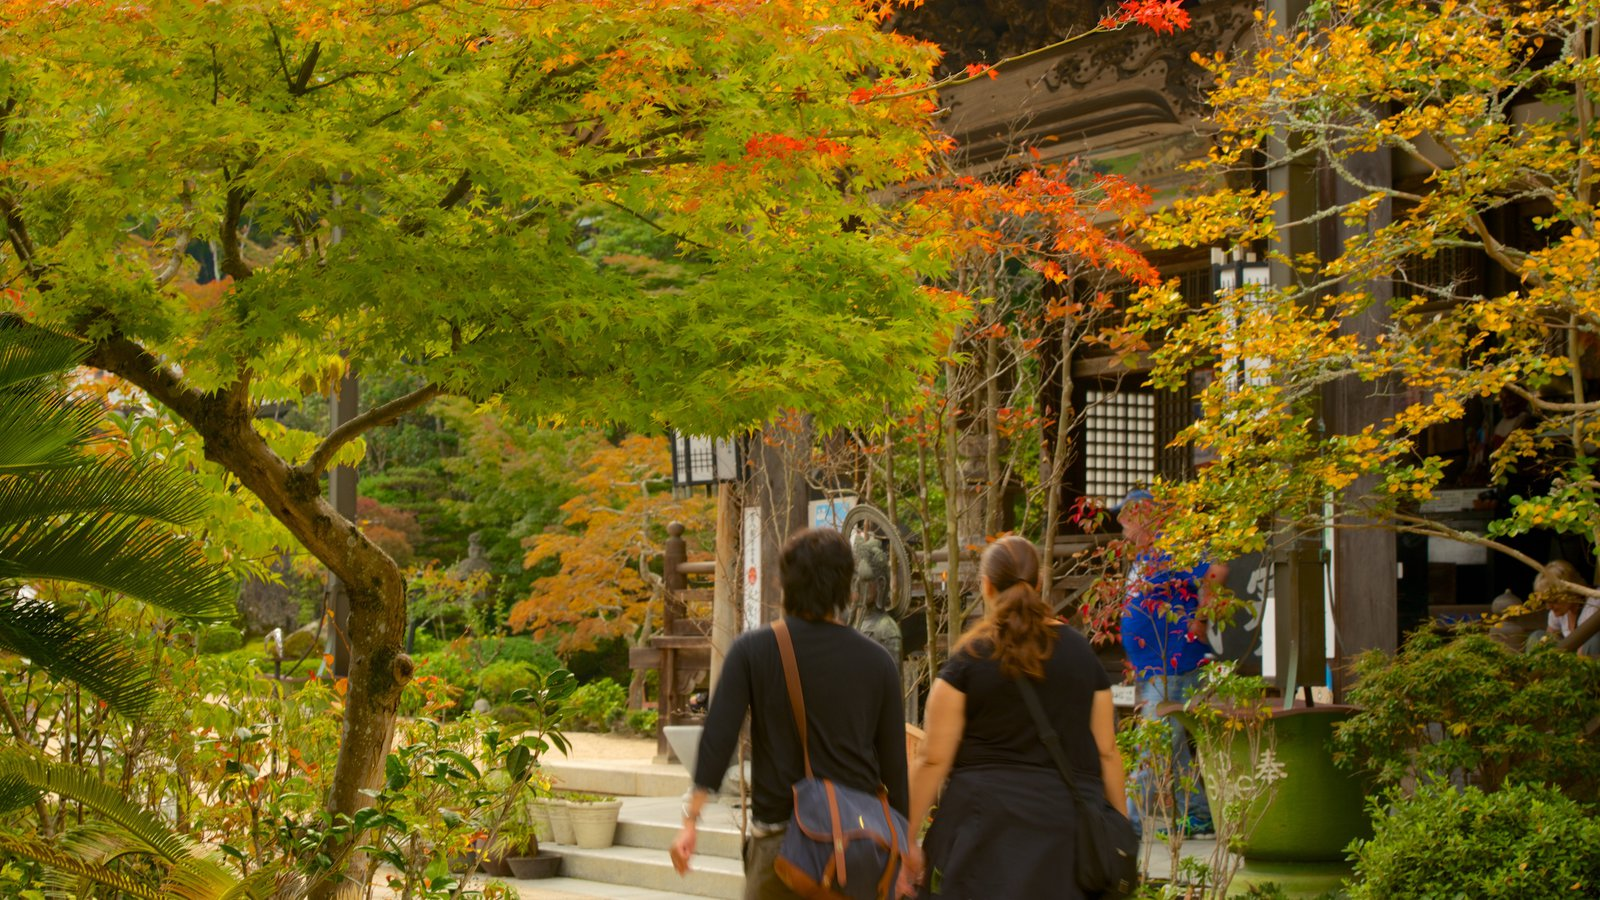 Gardens & Parks Pictures: View Images of Hiroshima